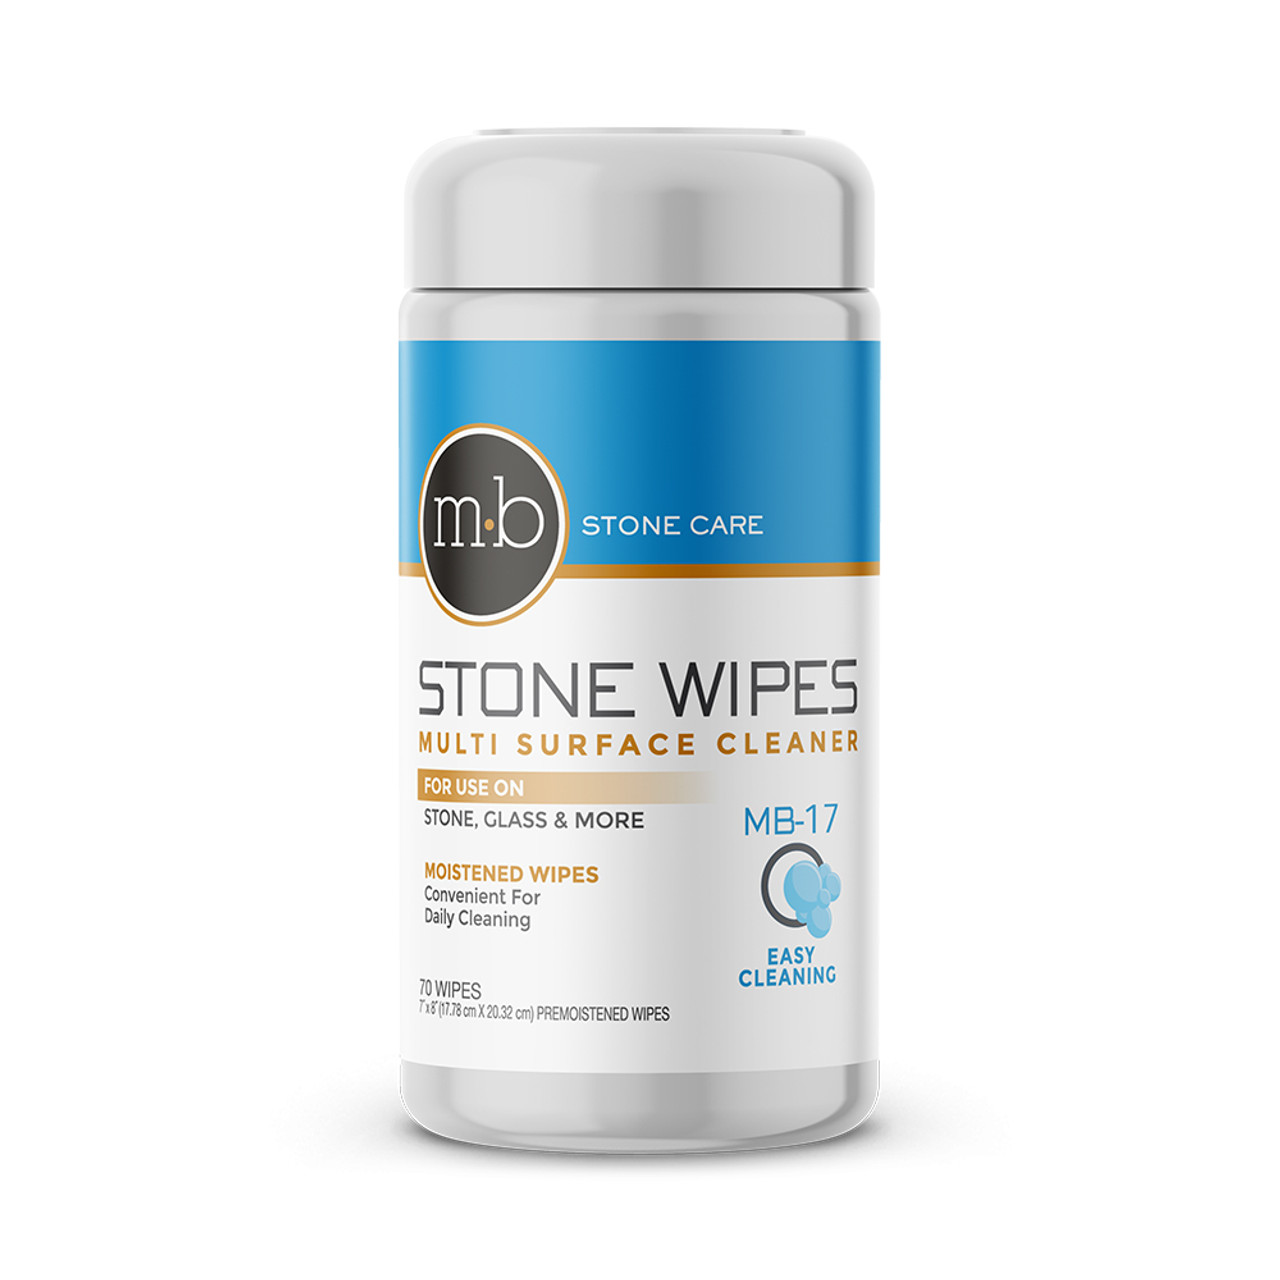 mb 17 cleaning wipes for natural stone